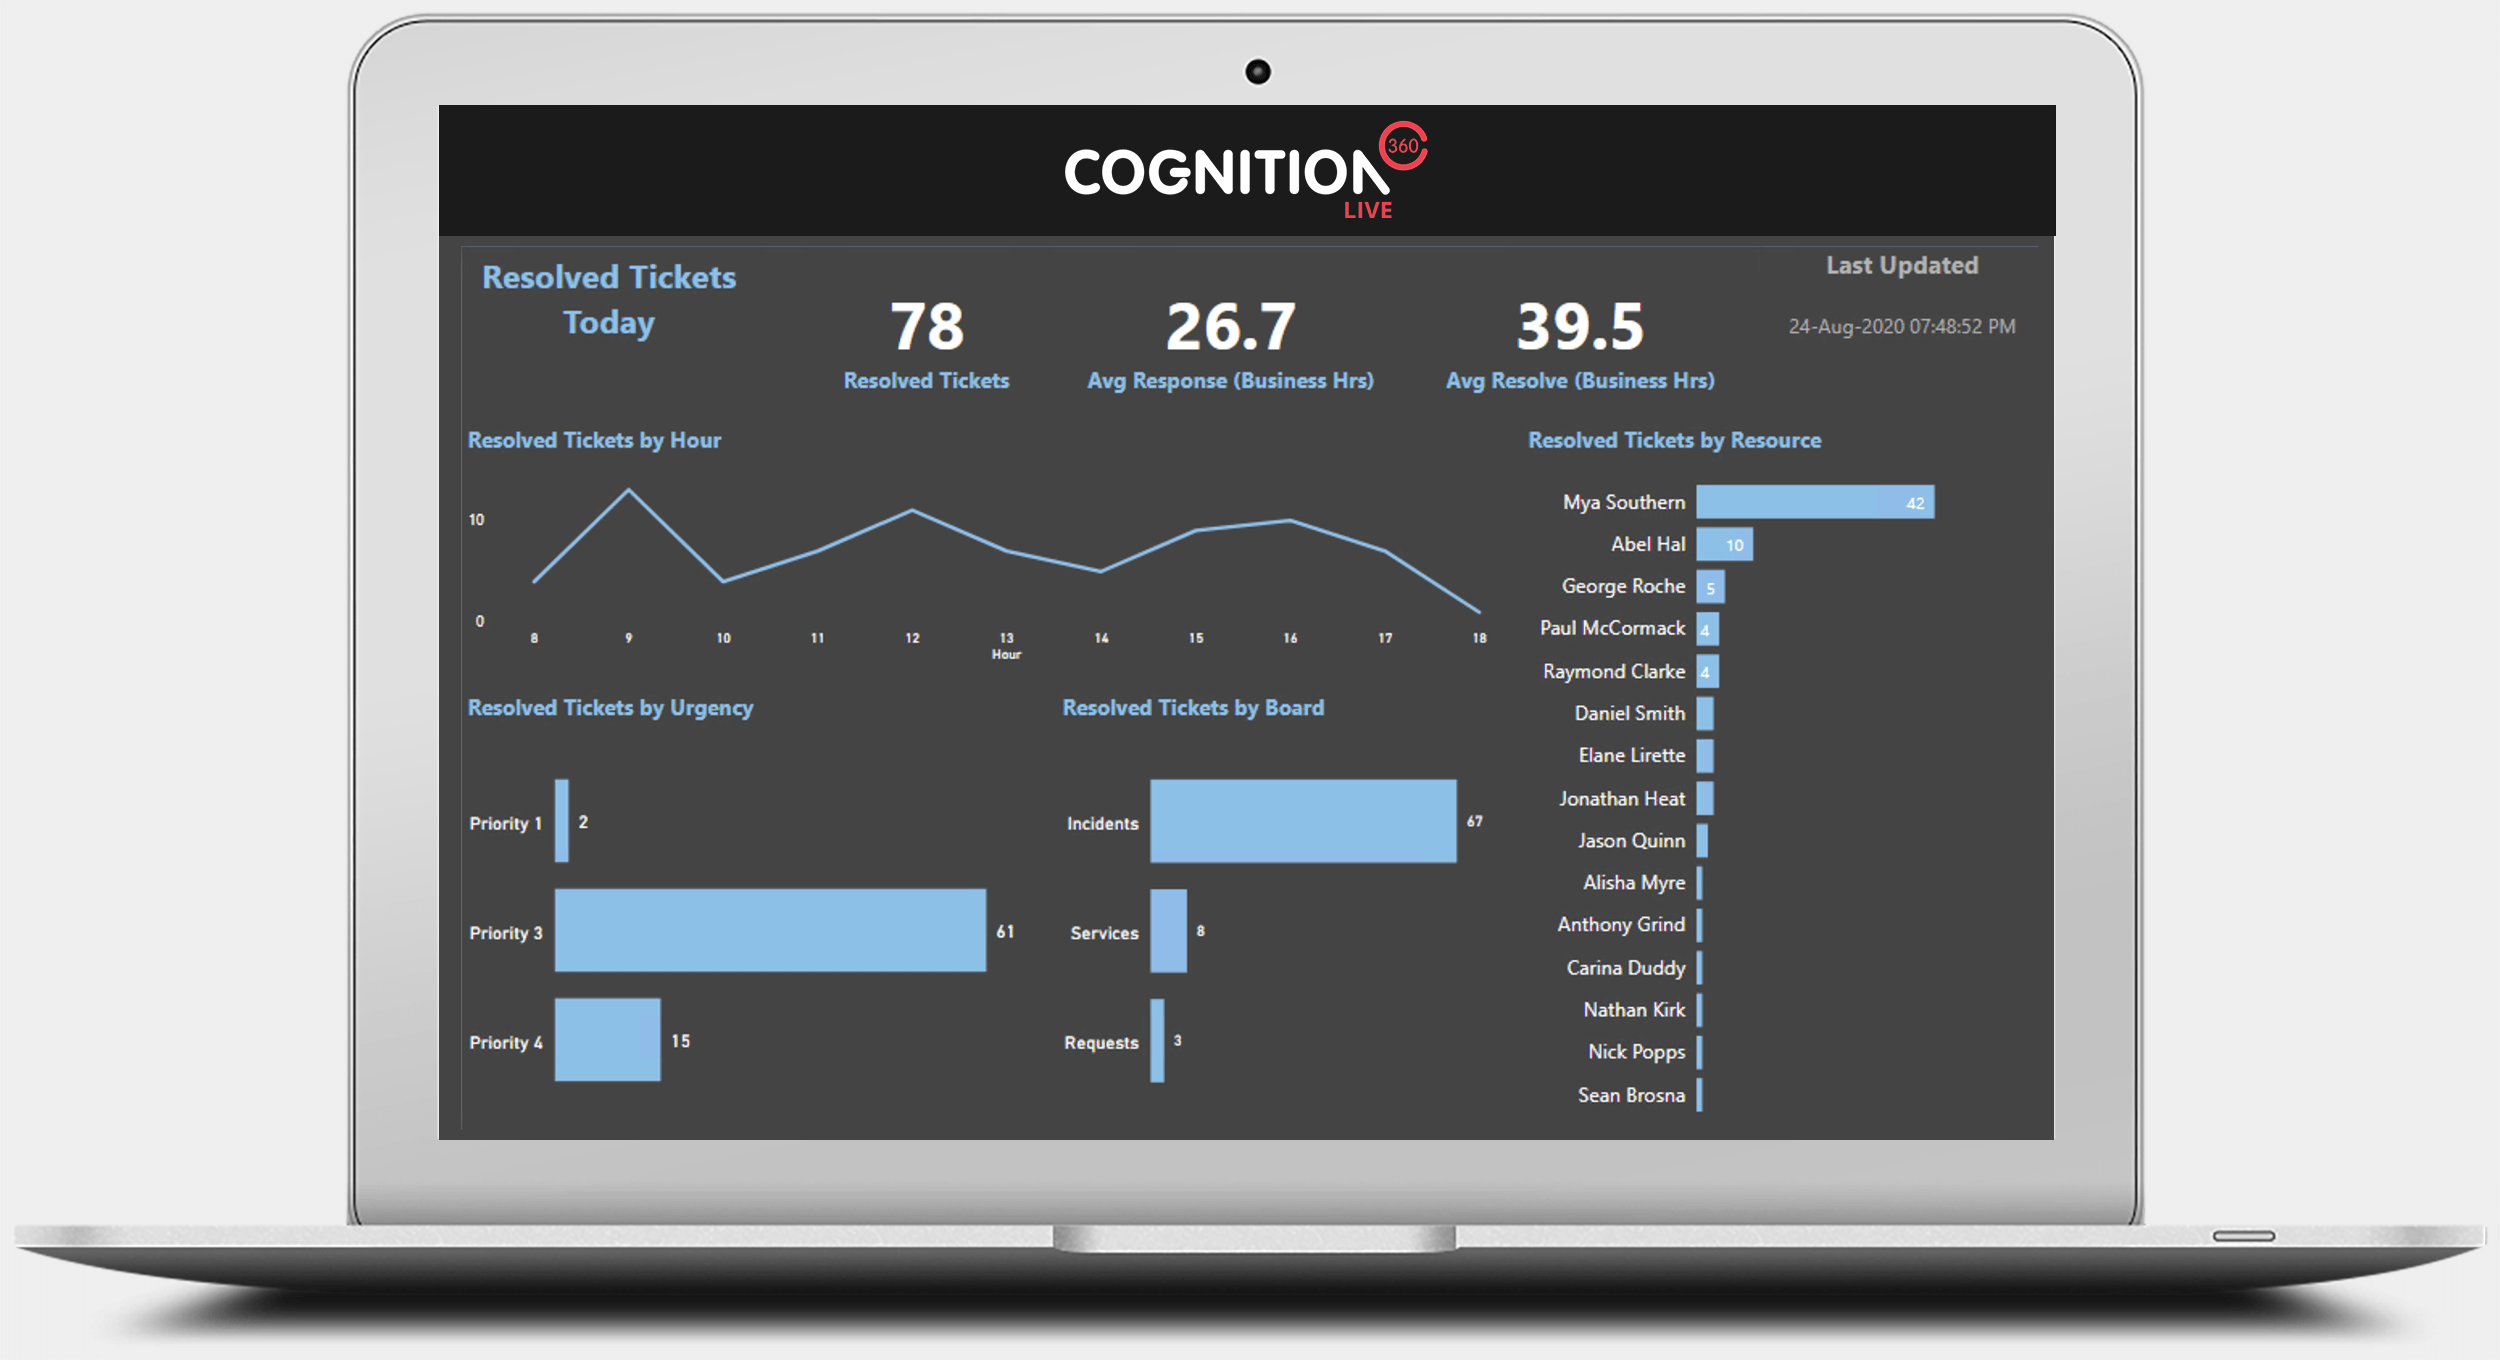 Cognition360 LIVE Resolved Tickets Summary screen